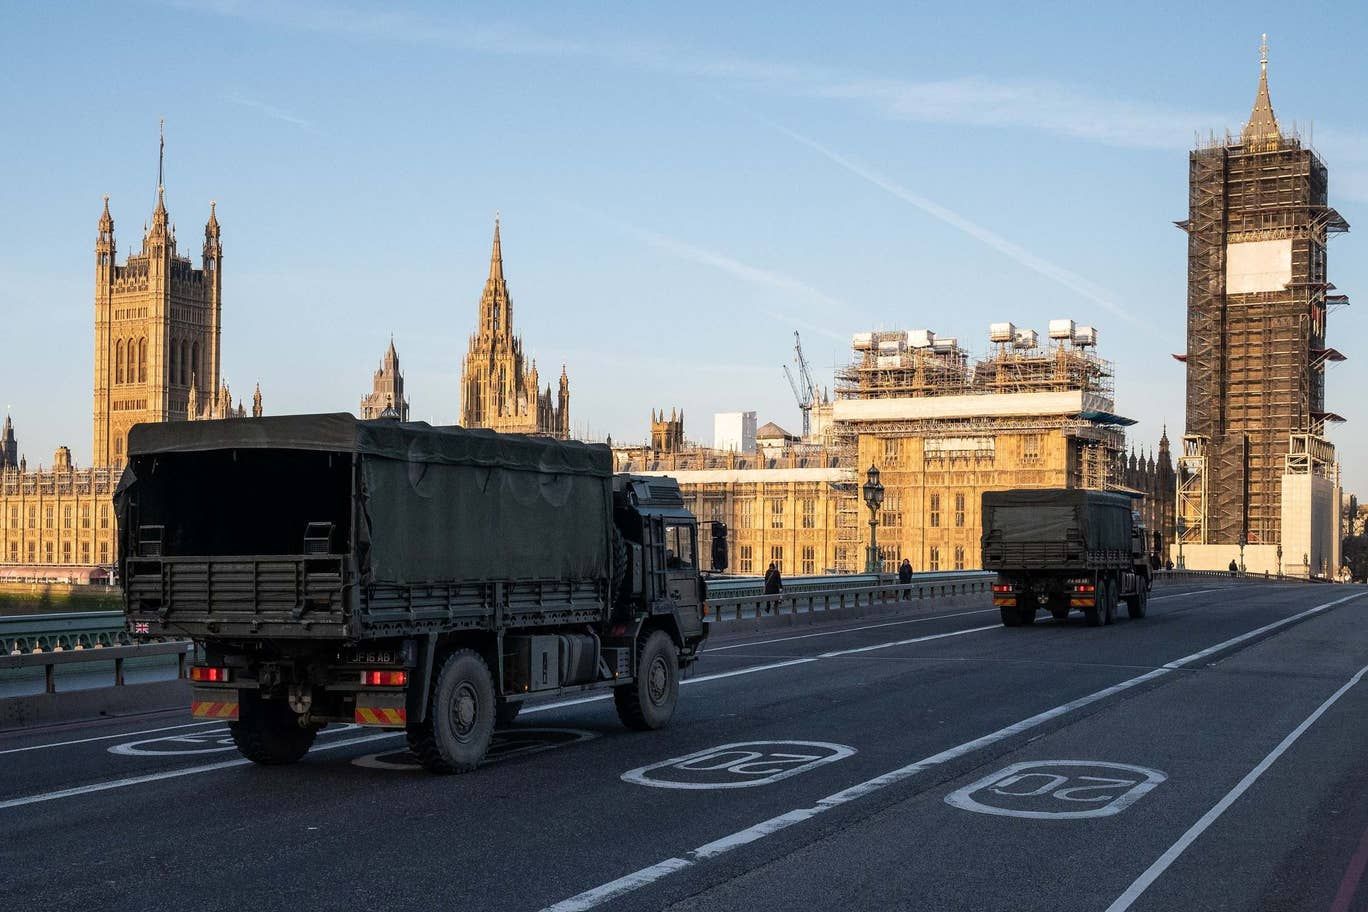 westminster-military-vehicles.jpg